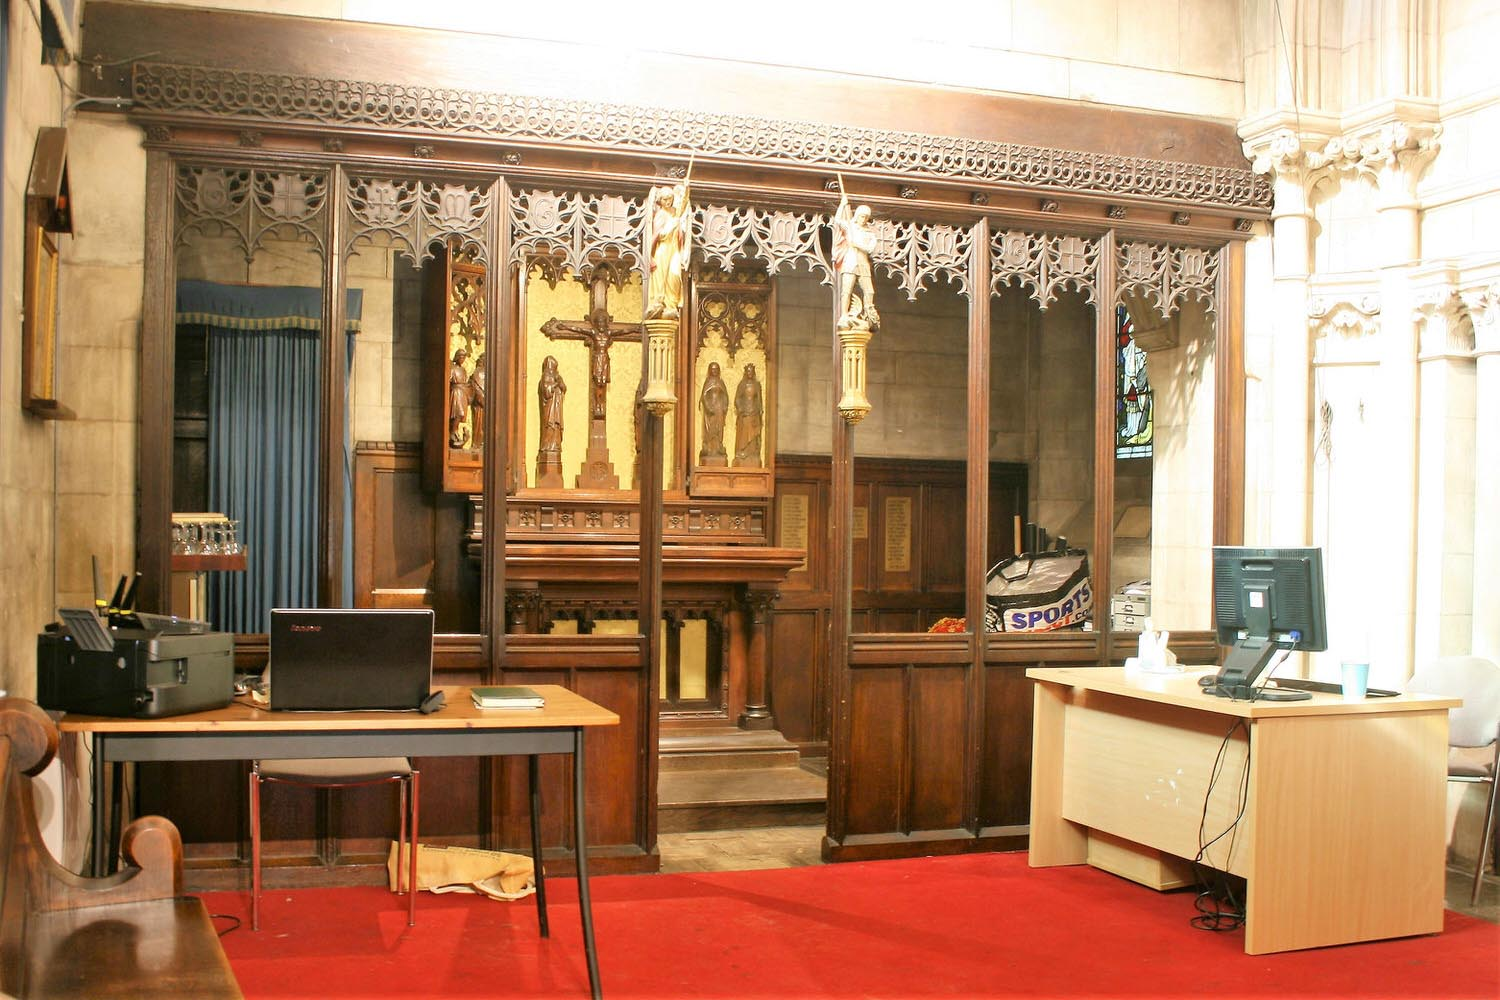 The Chapel of St Michael & St George at St John's - Capacity: 10 sitting or 15 standingHourly rate: £15